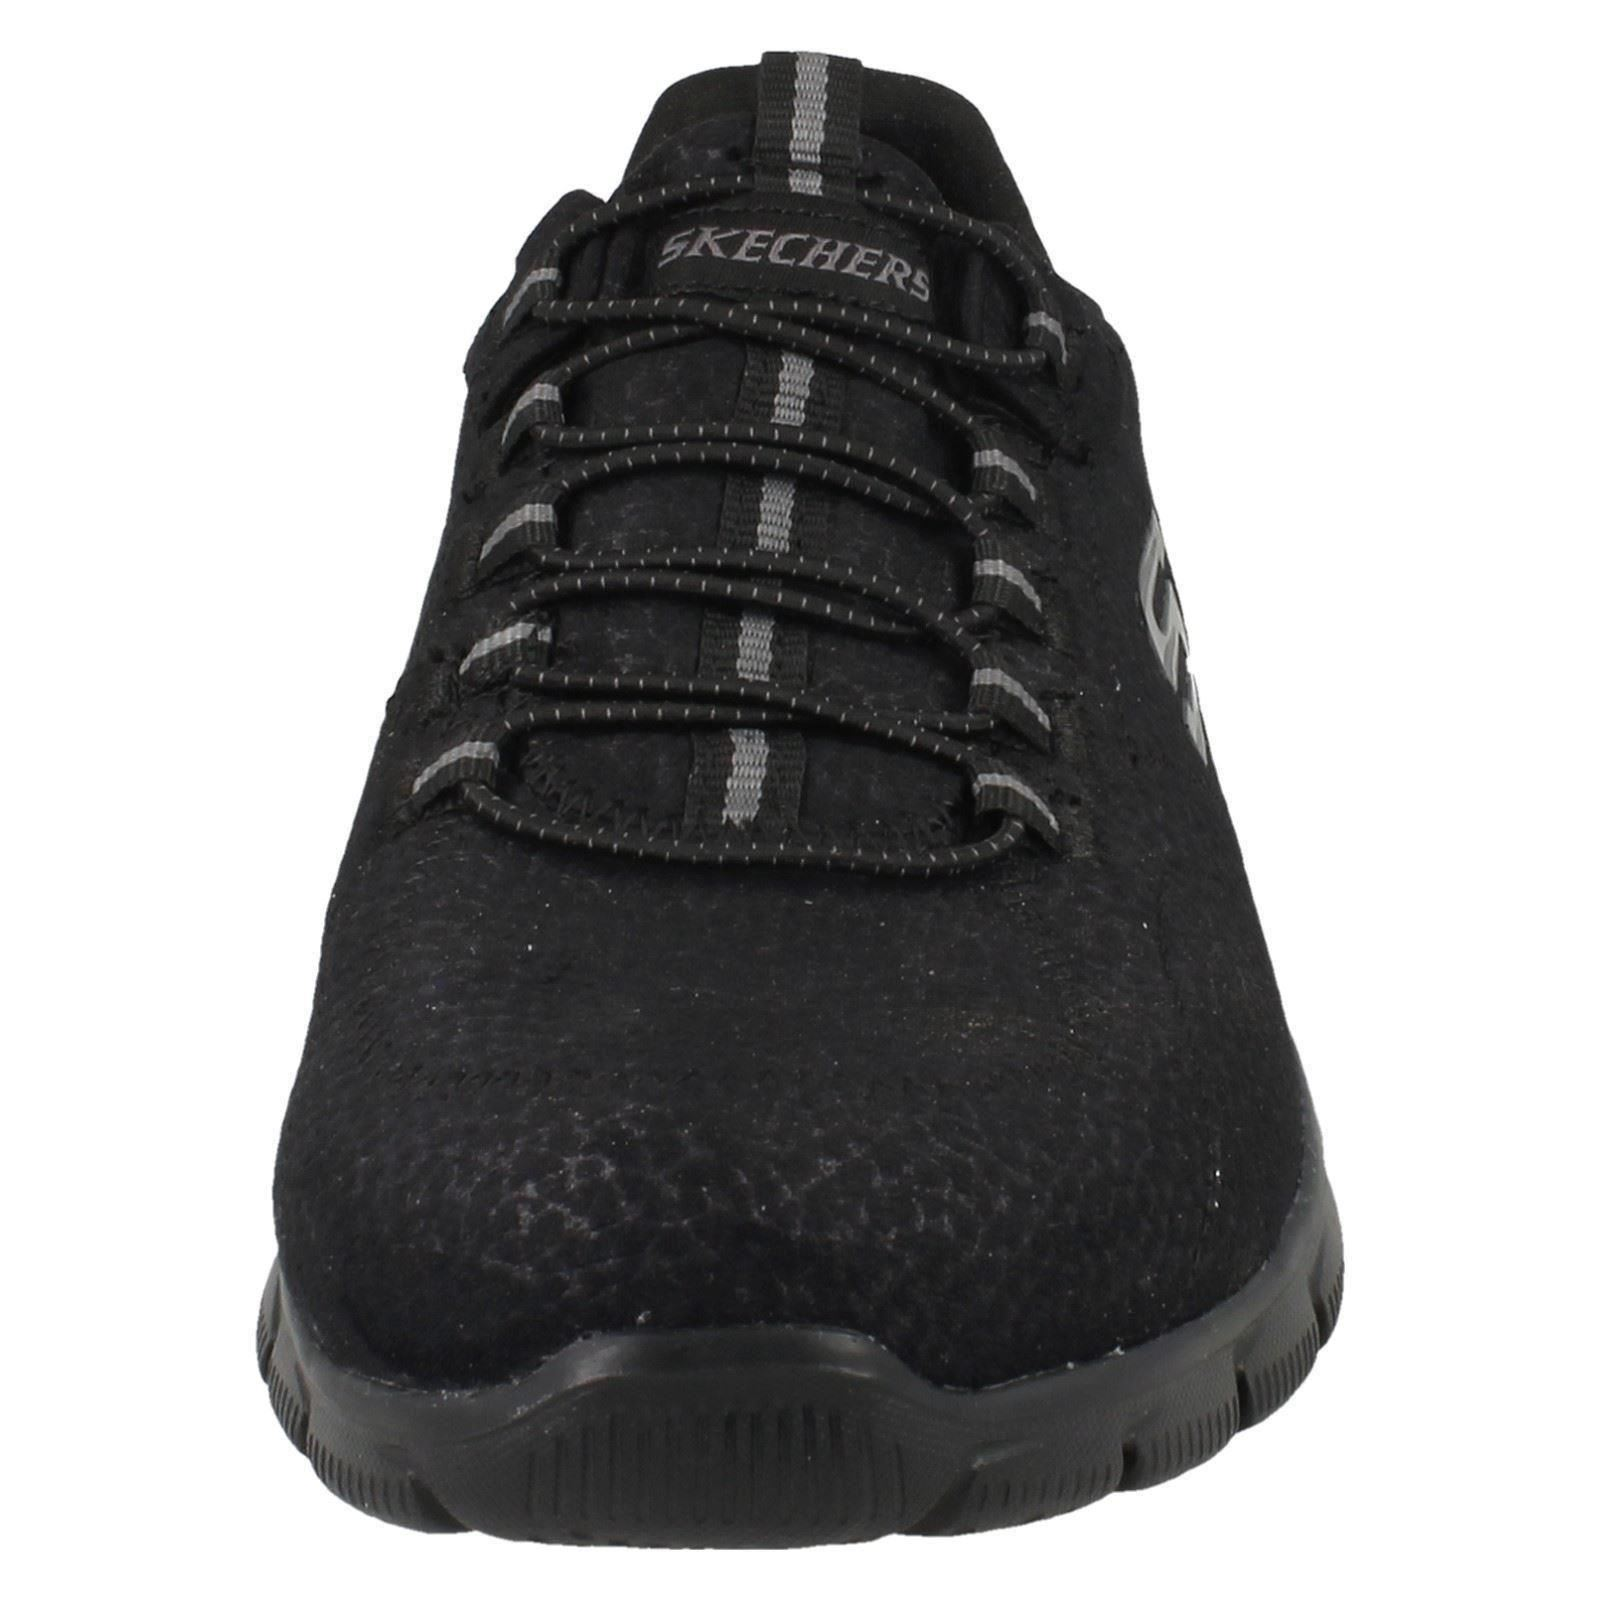 Charge Black dames de sport Take Skechers 12407 pour Chaussures xOpwzY